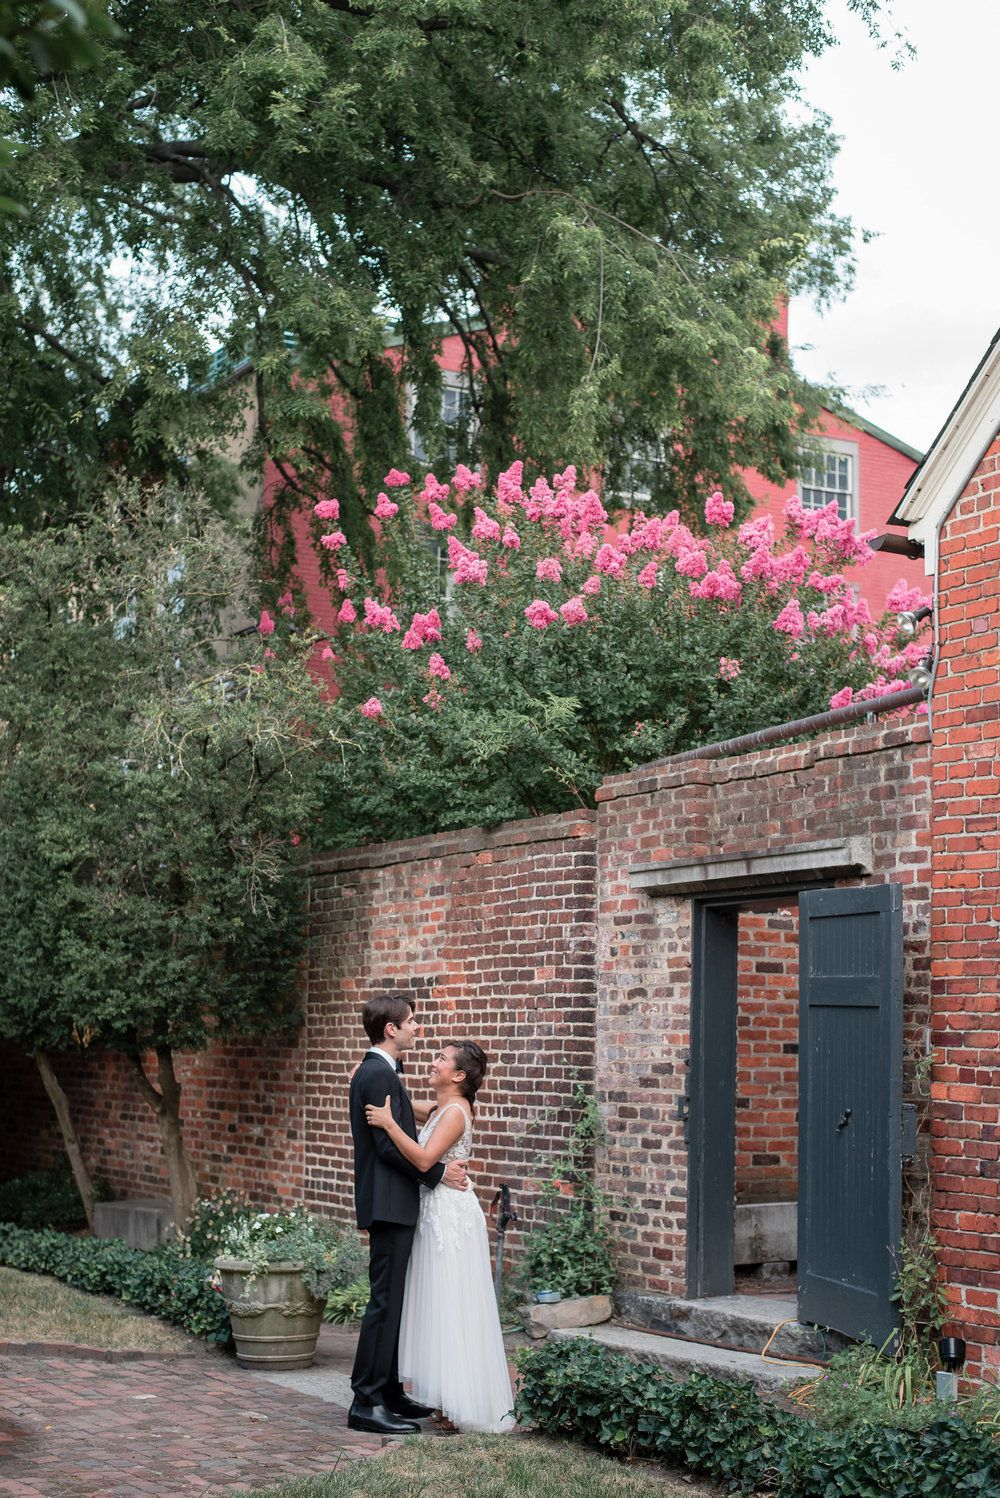 13 Museum Weddings And Engagement Sessions That Will Leave You In